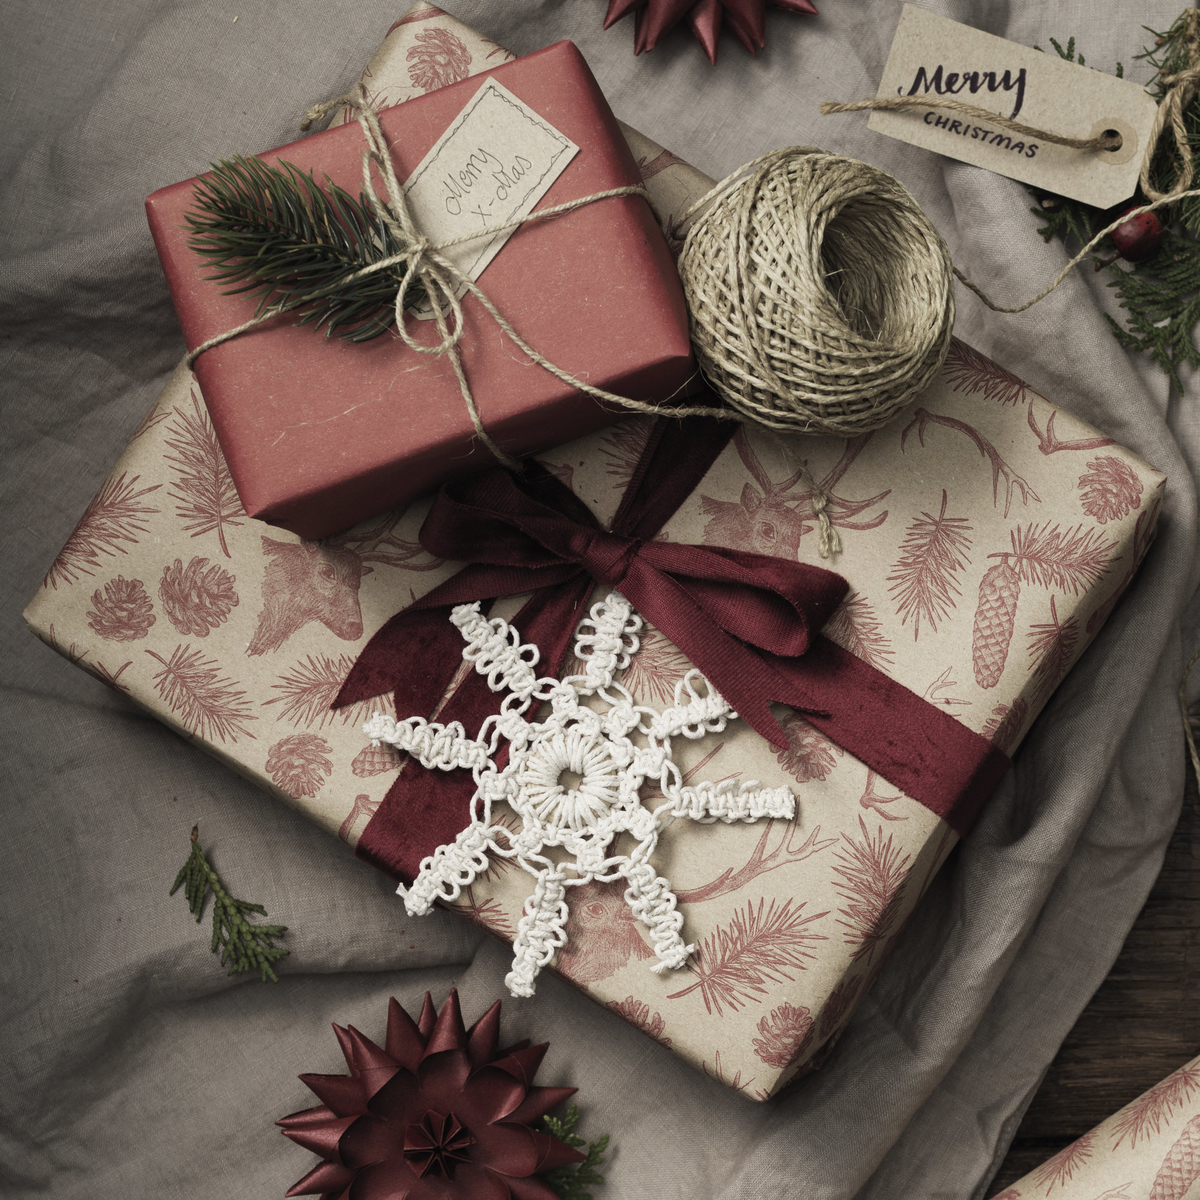 Decorate for the holidays with macramé stars